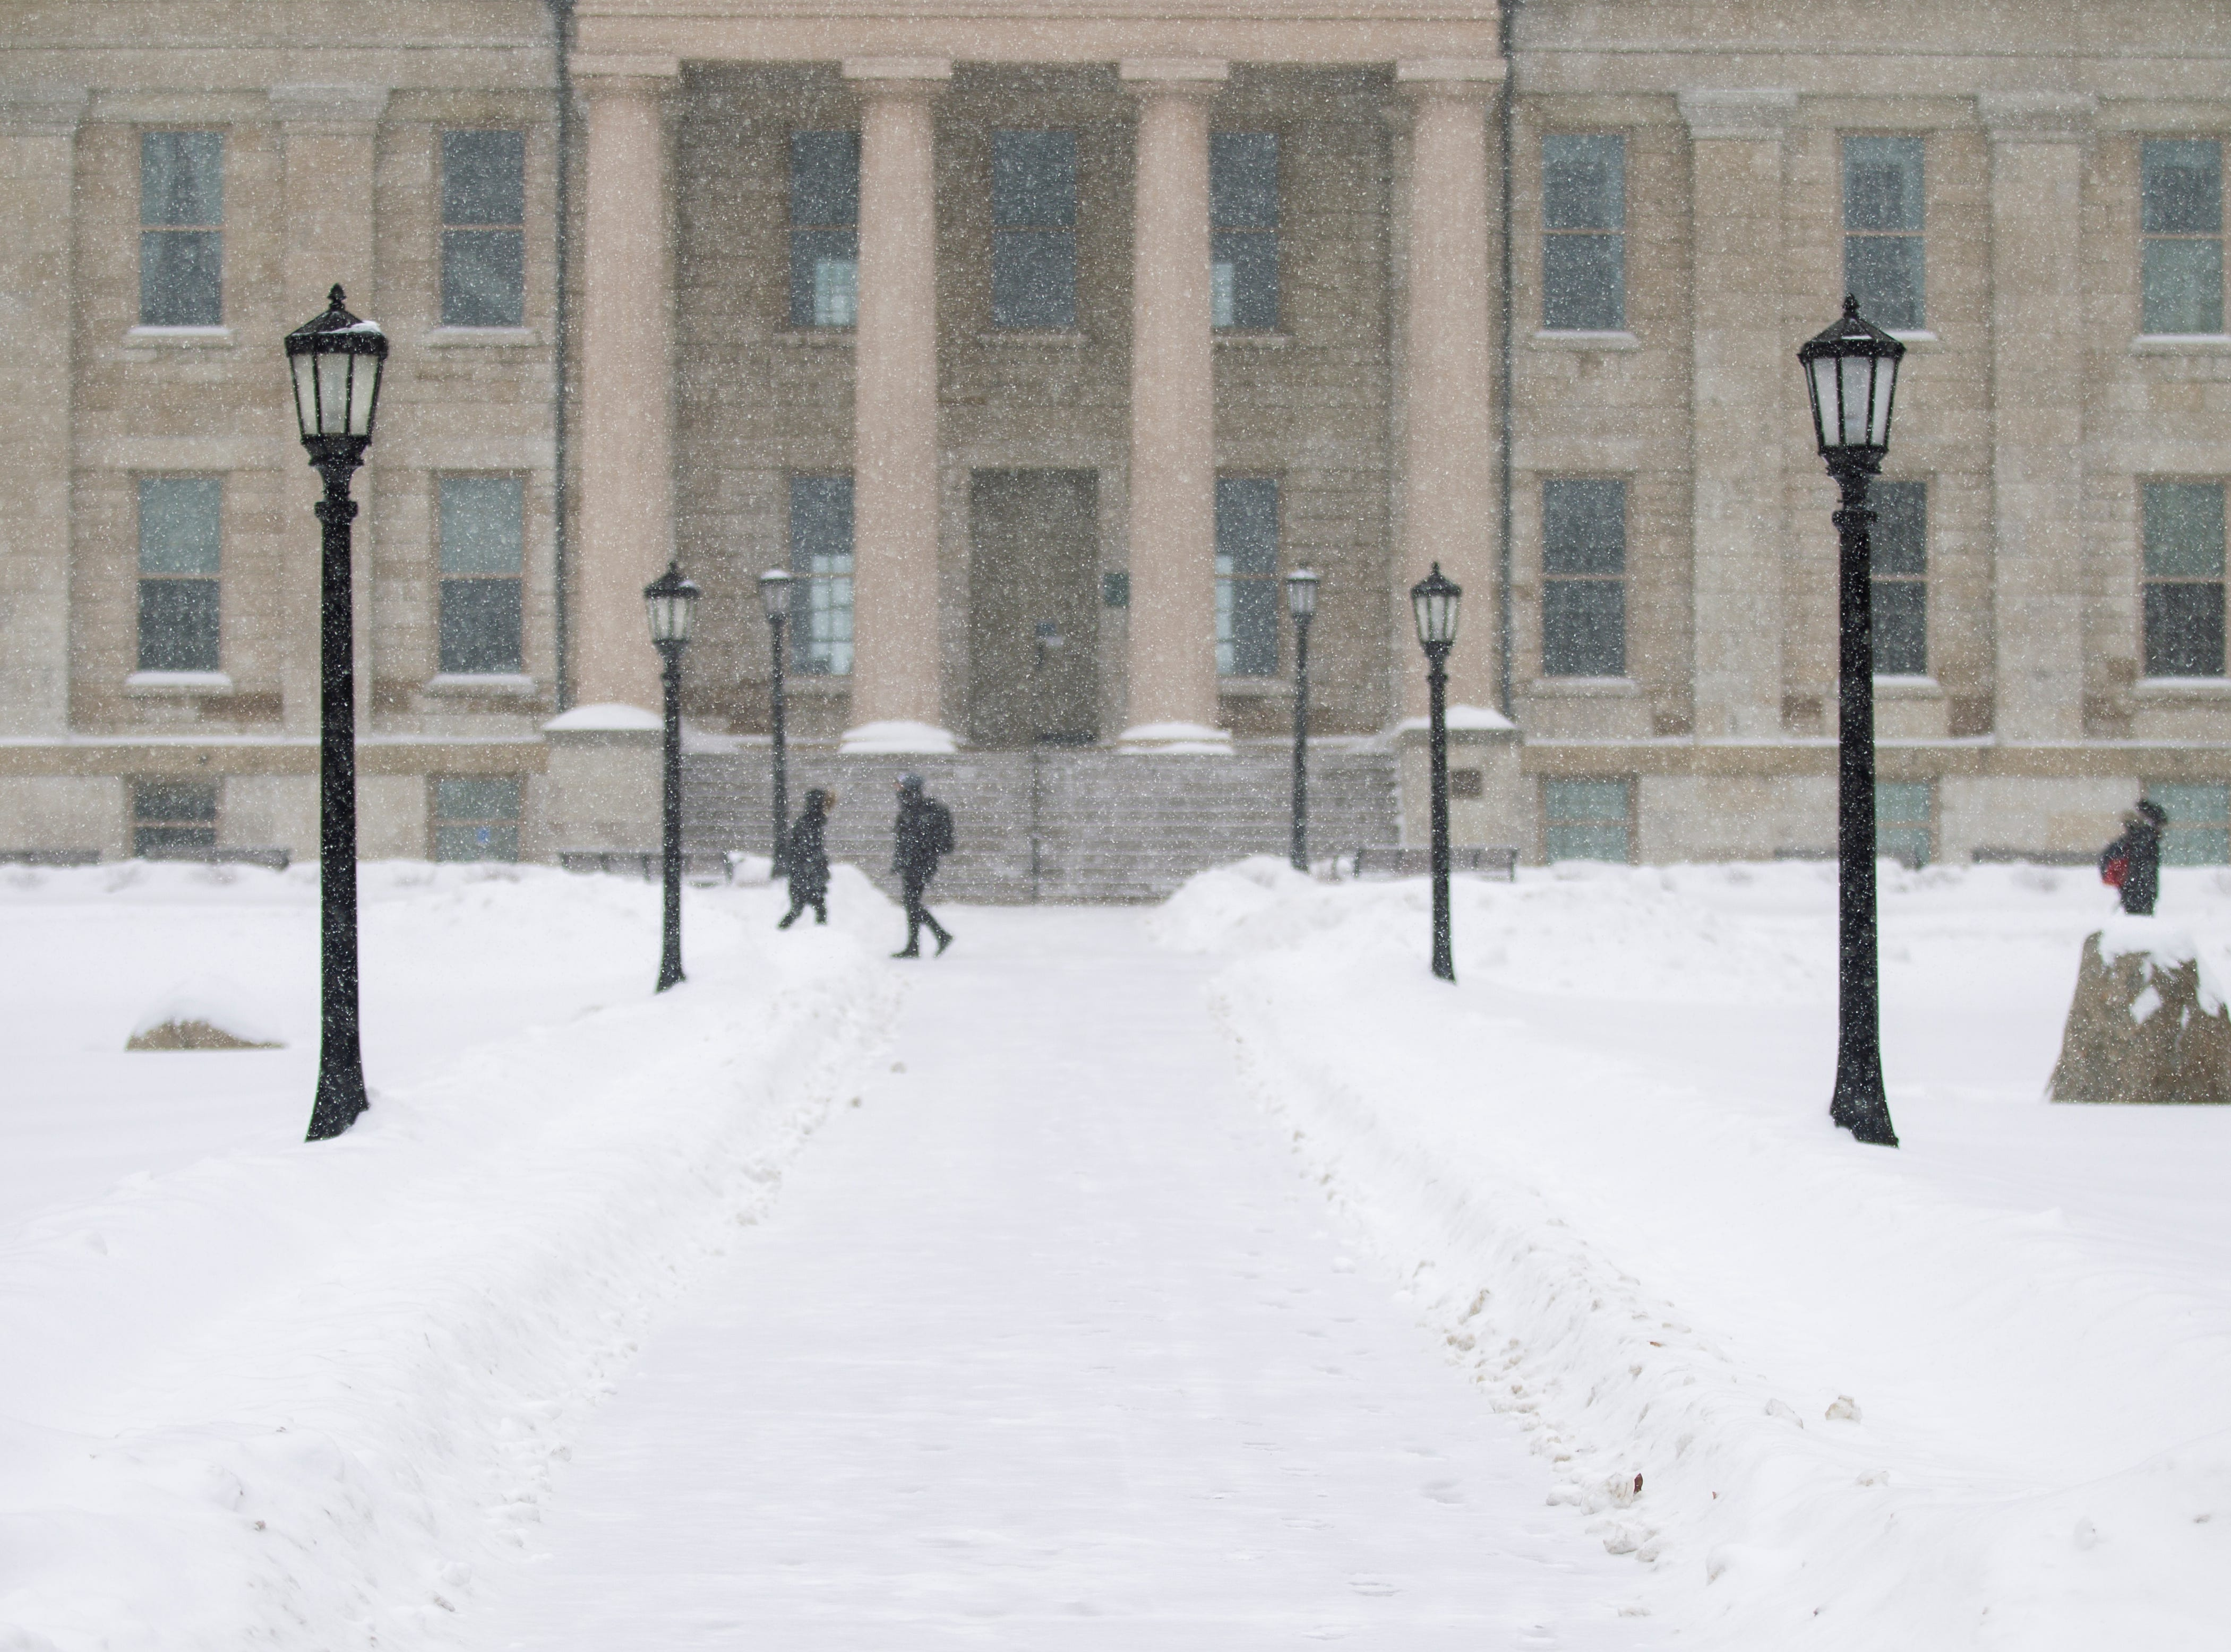 Students walk past the Old Capitol Building as snow falls on Thursday, Jan. 31, 2019, in downtown Iowa City, Iowa.